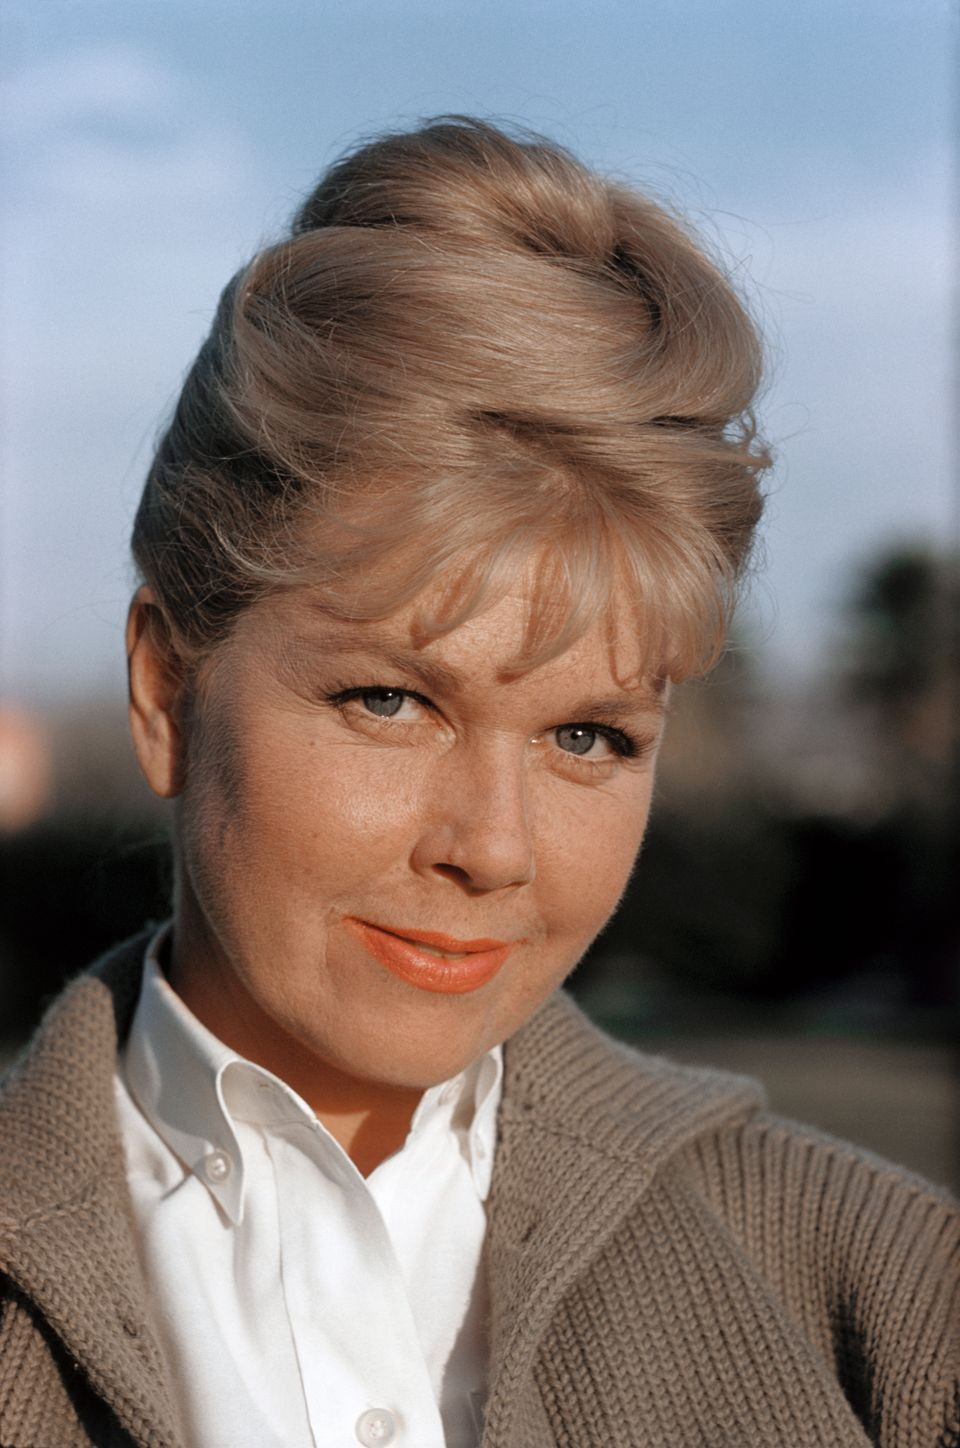 Westlake Legal Group 5cd97de12100005800802521 A Look Back At Doris Day's Life And Career In Photos